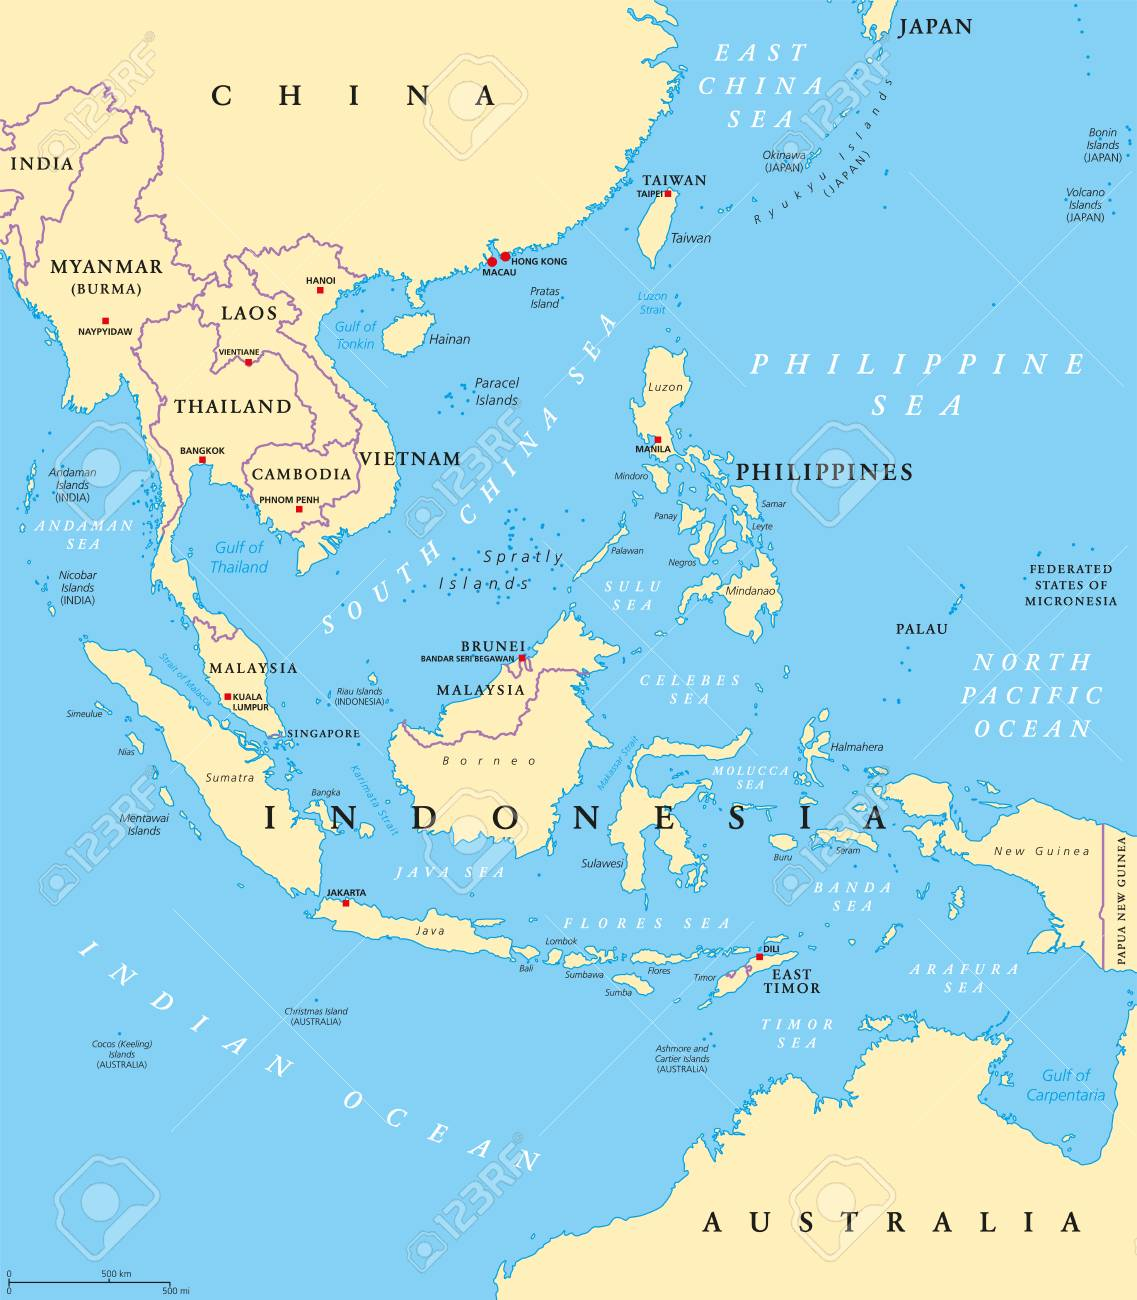 Political Map Of Southeast Asia With Capitals.Southeast Asia Political Map With Capitals And Borders Subregion